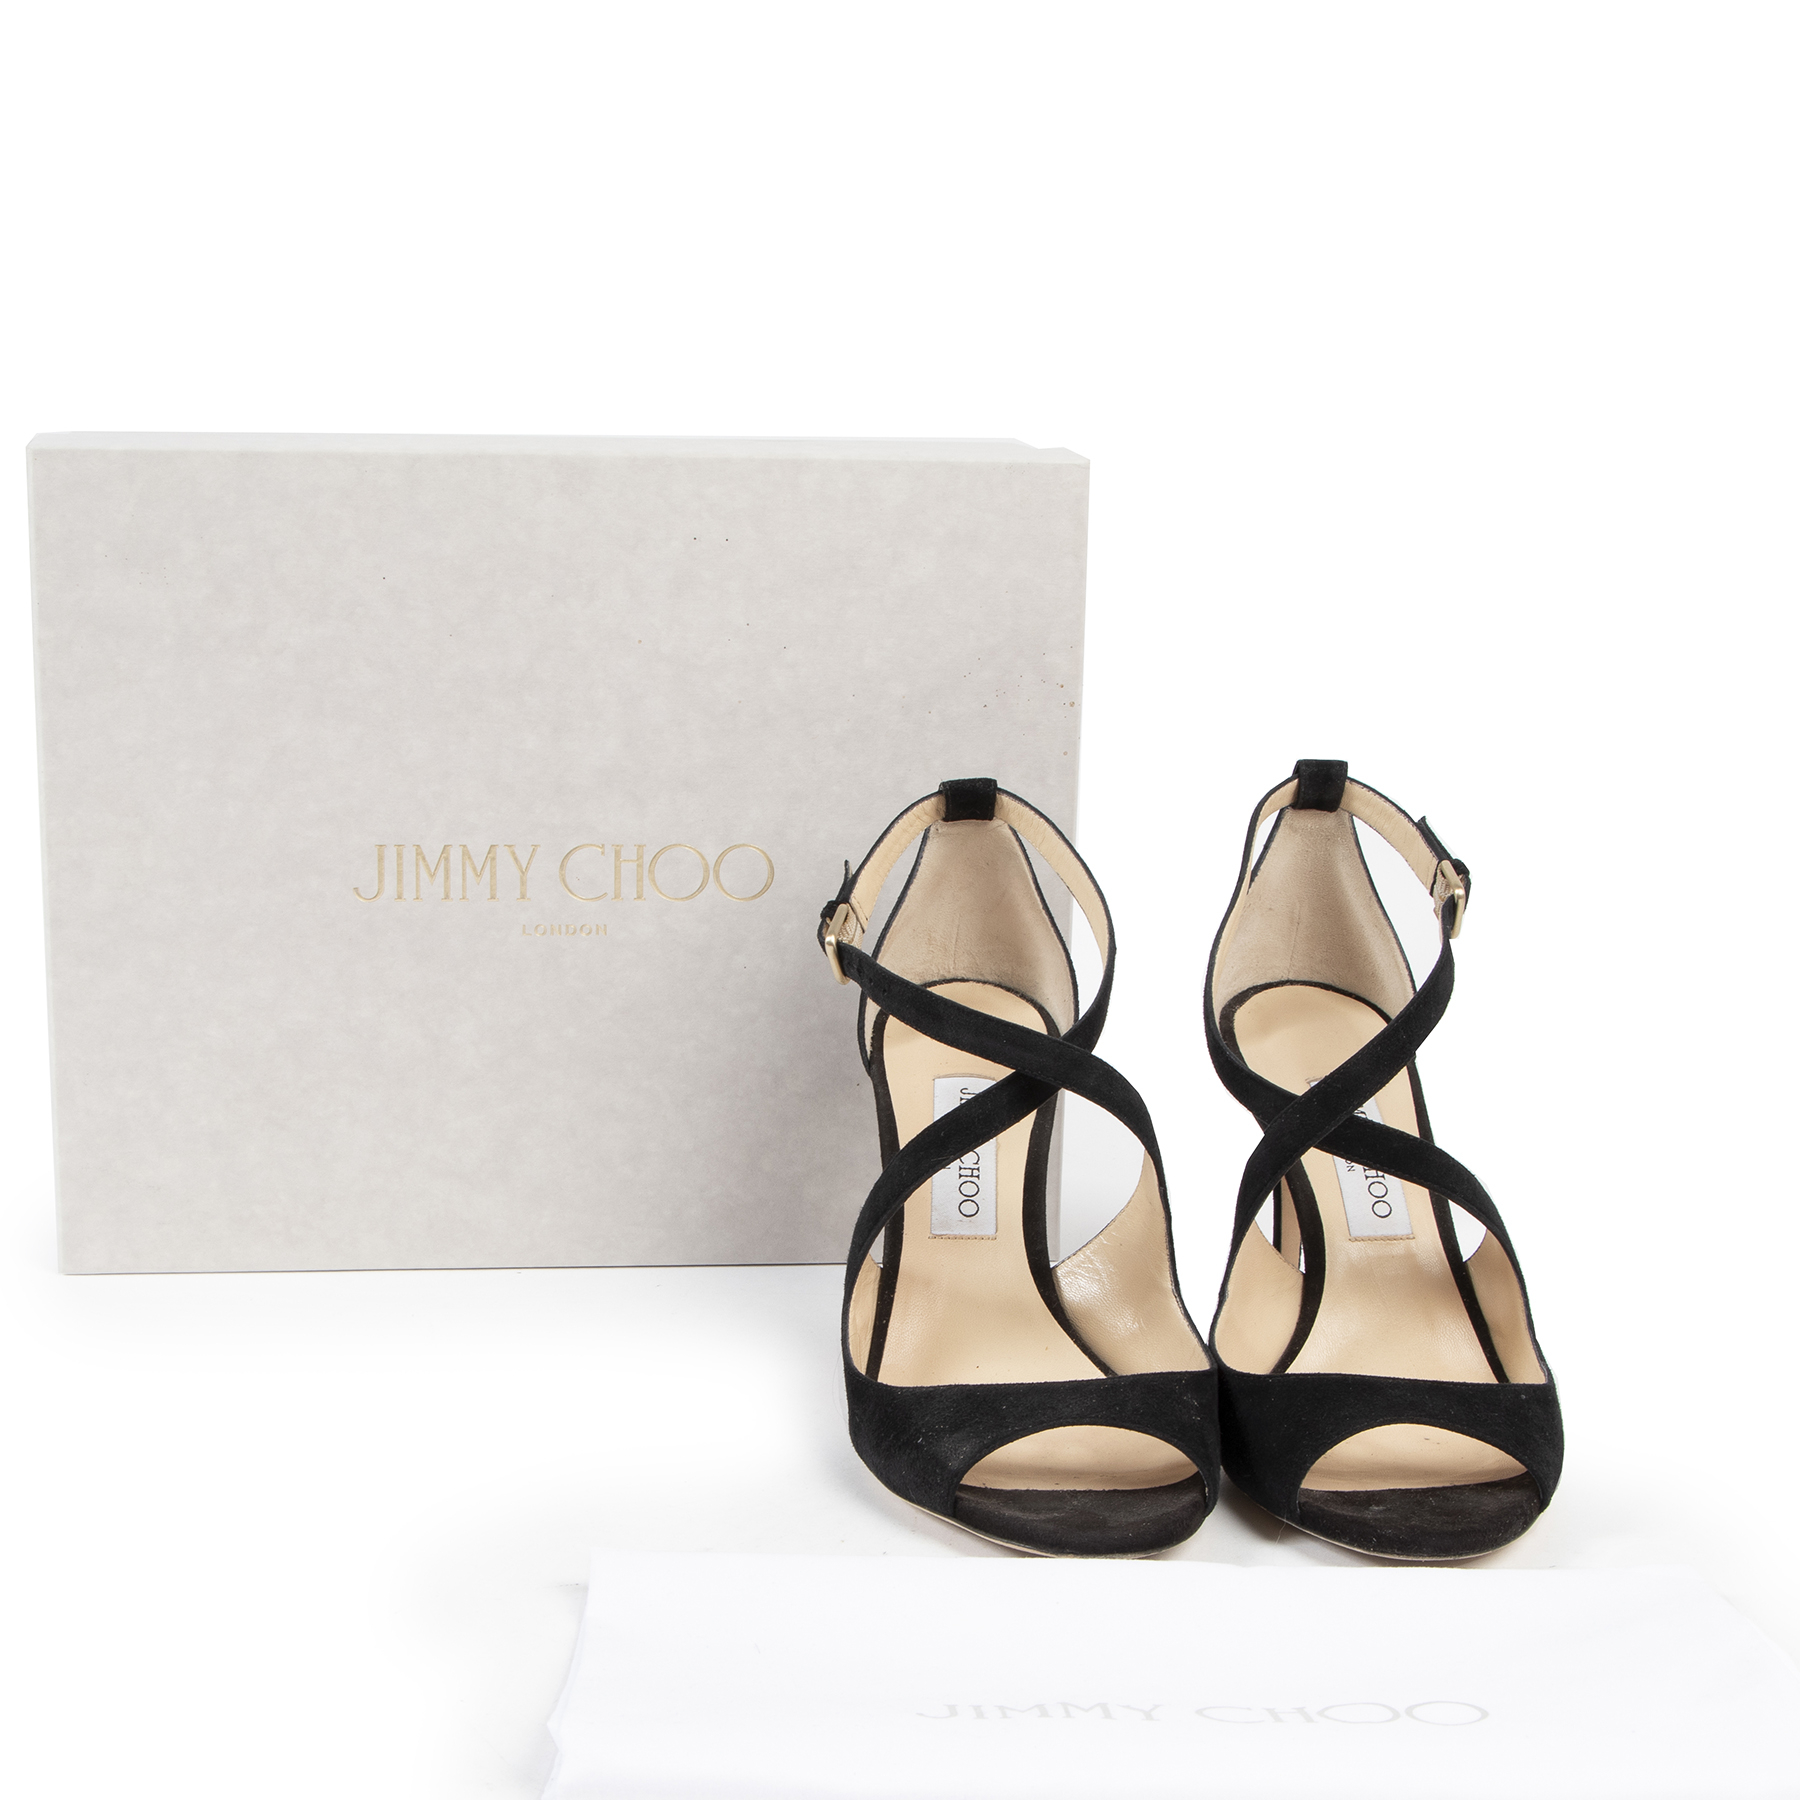 Authentic secondhand Jimmy Choo Black Suede Emily Sandal Heels - Size 40 designer pumps fashion luxury vintage webshop safe secure online shopping